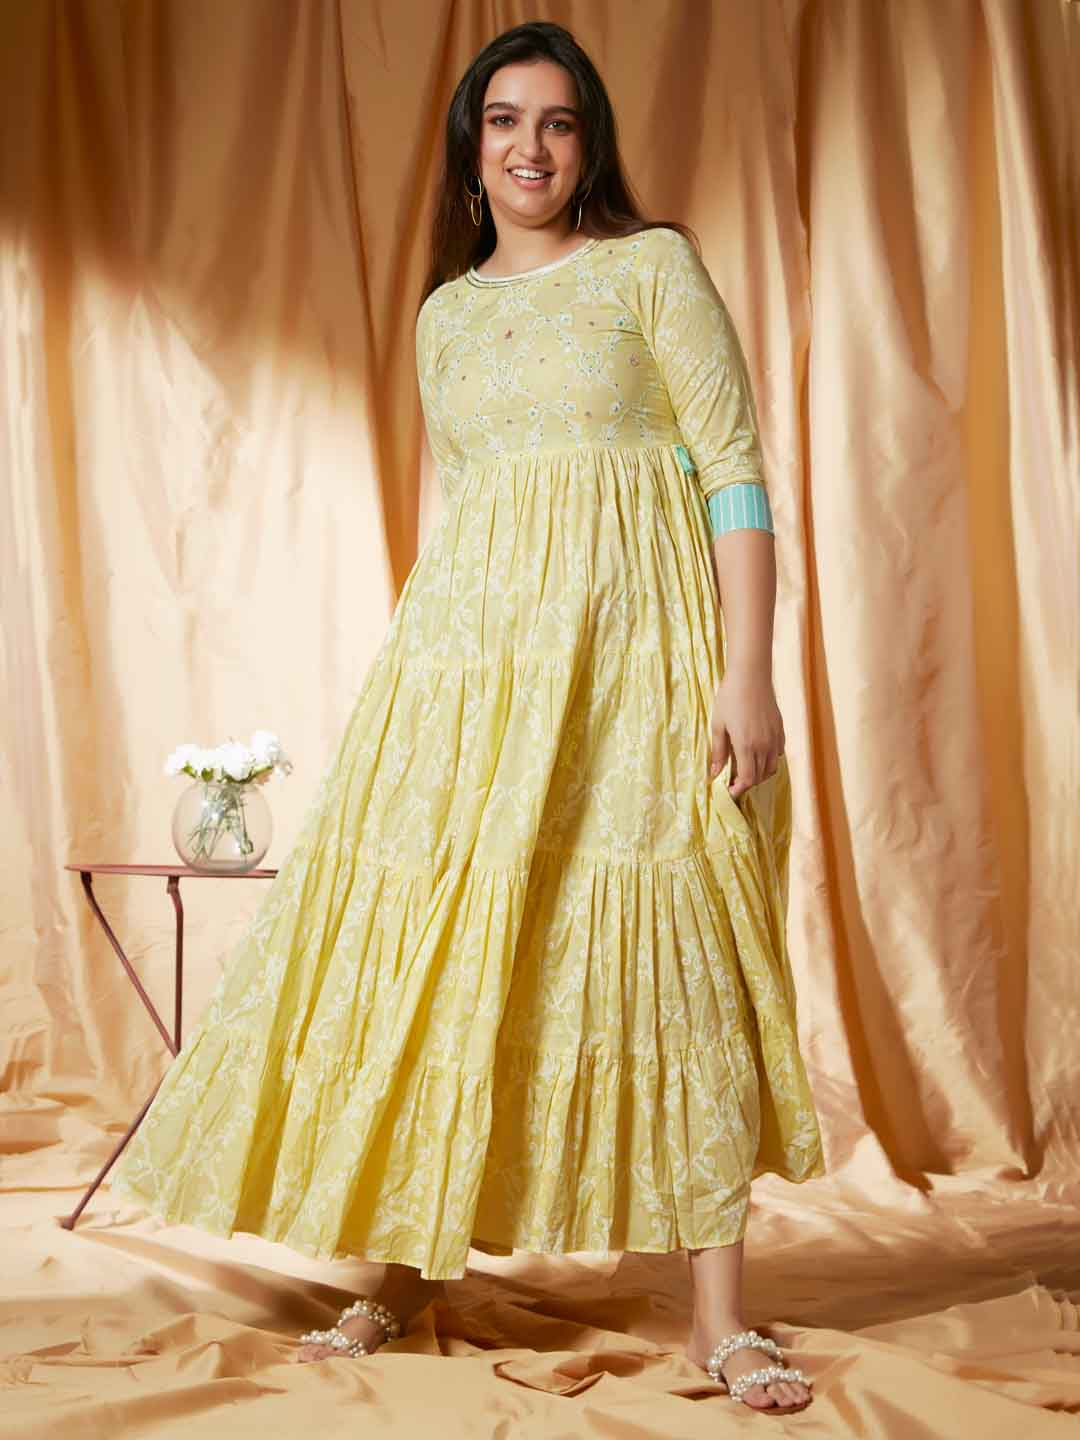 Front Side Lemon Yellow Print & Handwork Viscose Cotton Flaired Dress